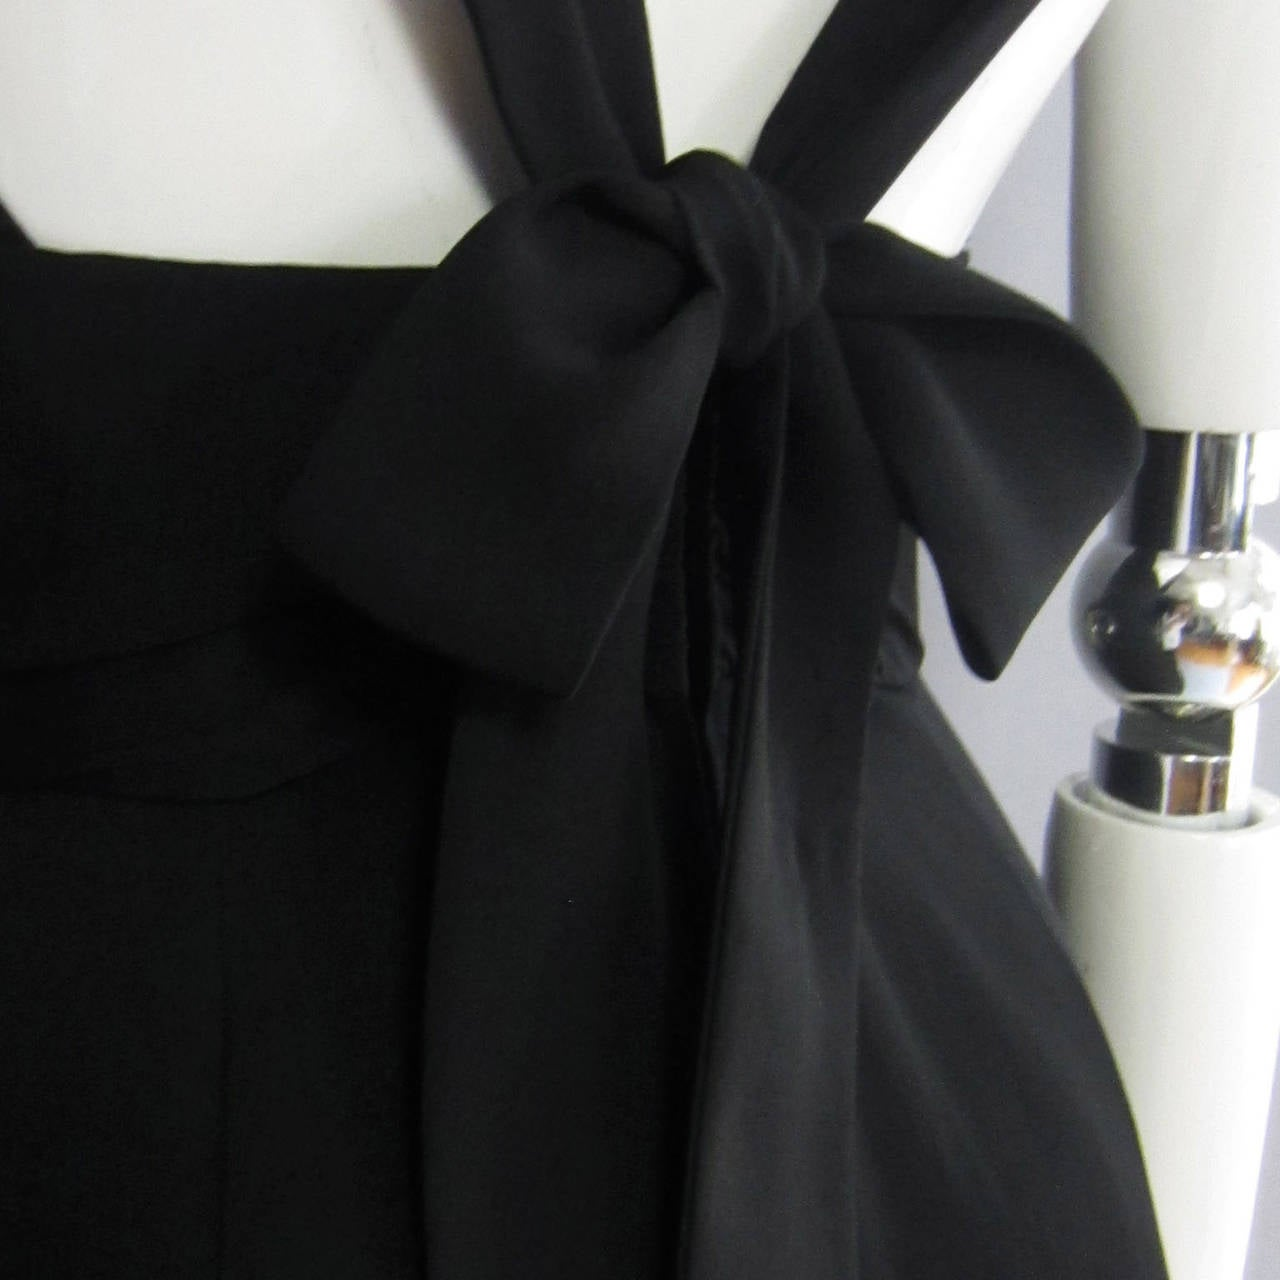 NORMAN NORELL Black Column Evening Gown with Back Tie Detail For Sale 4